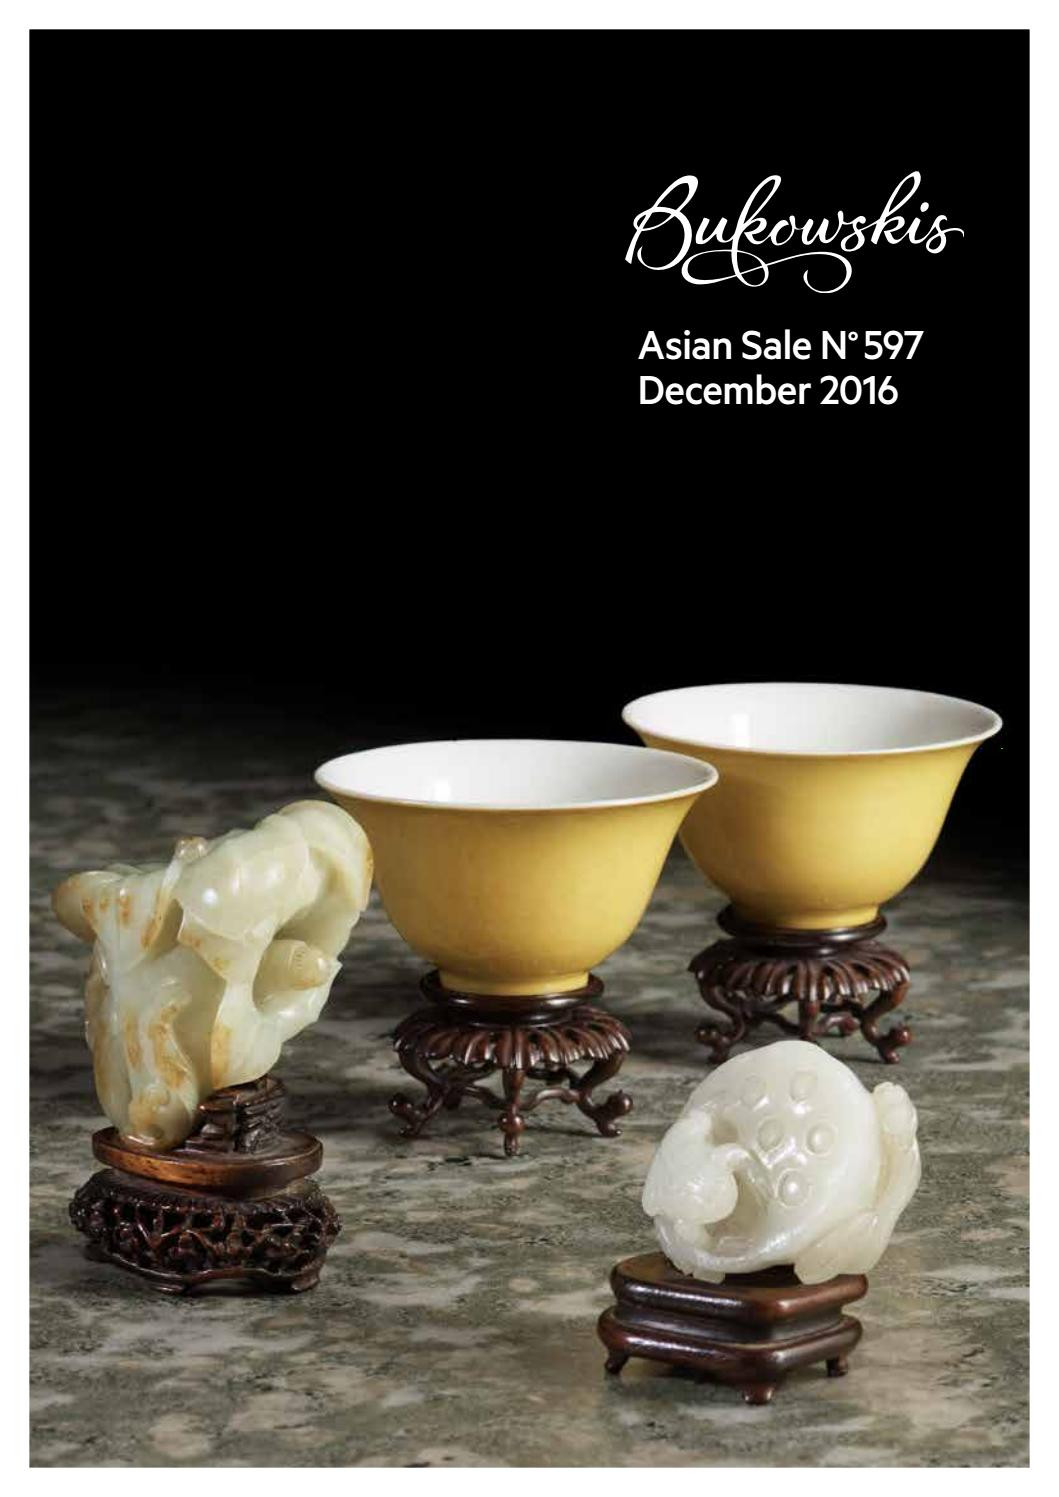 ming dynasty vase for sale of bukowskis asian sale december 2016 by bukowskis issuu with page 1